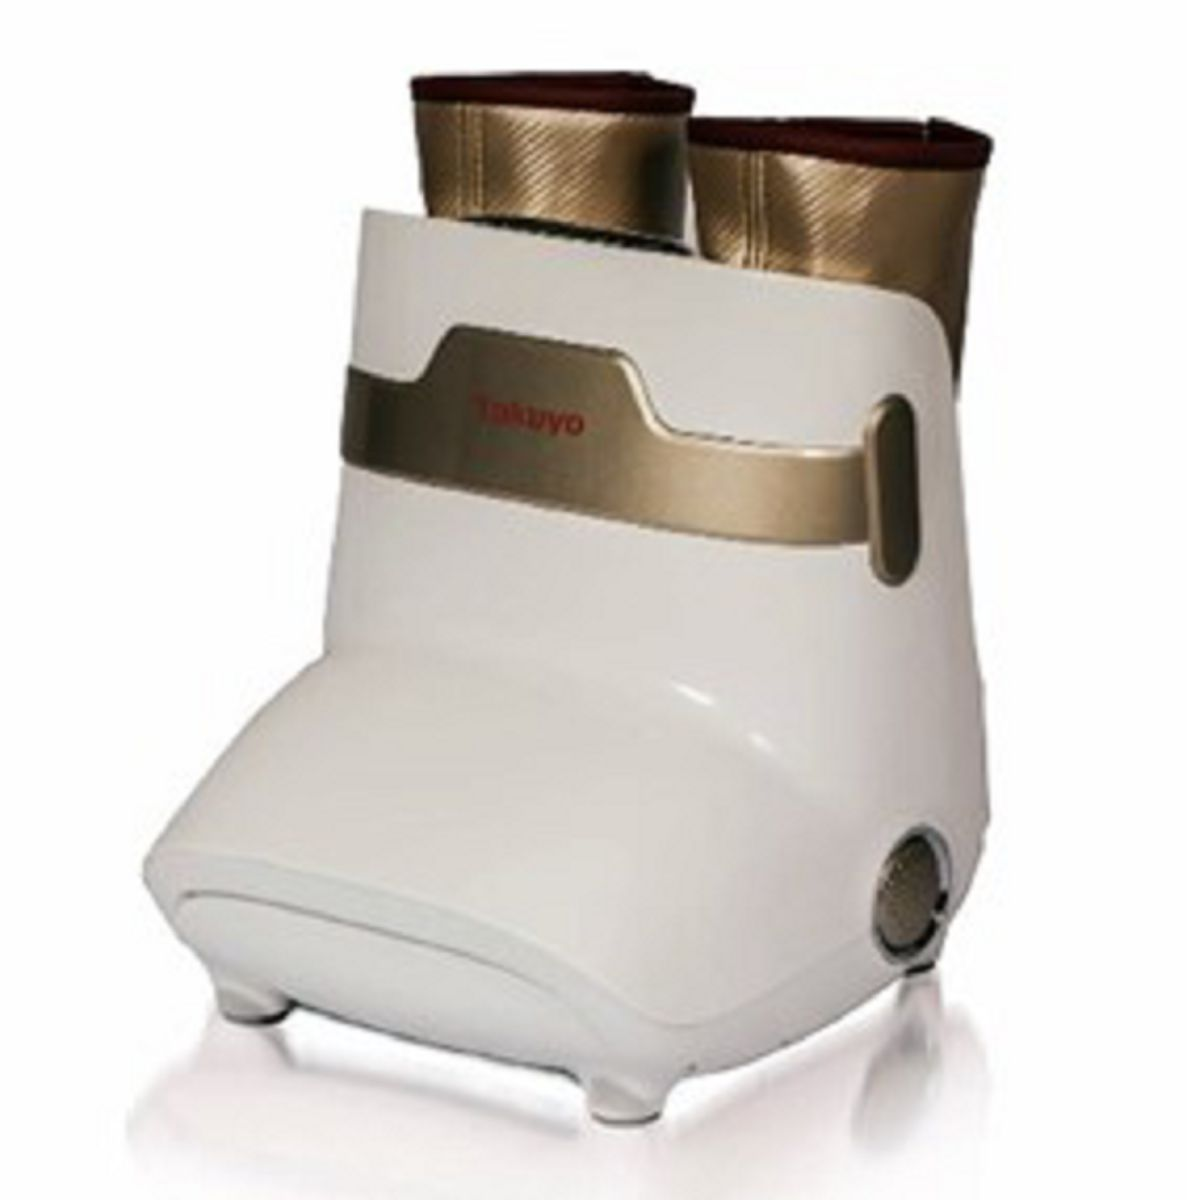 Tokuyo Leg Boots Massage / Tokuyo Biotech Co., Ltd.